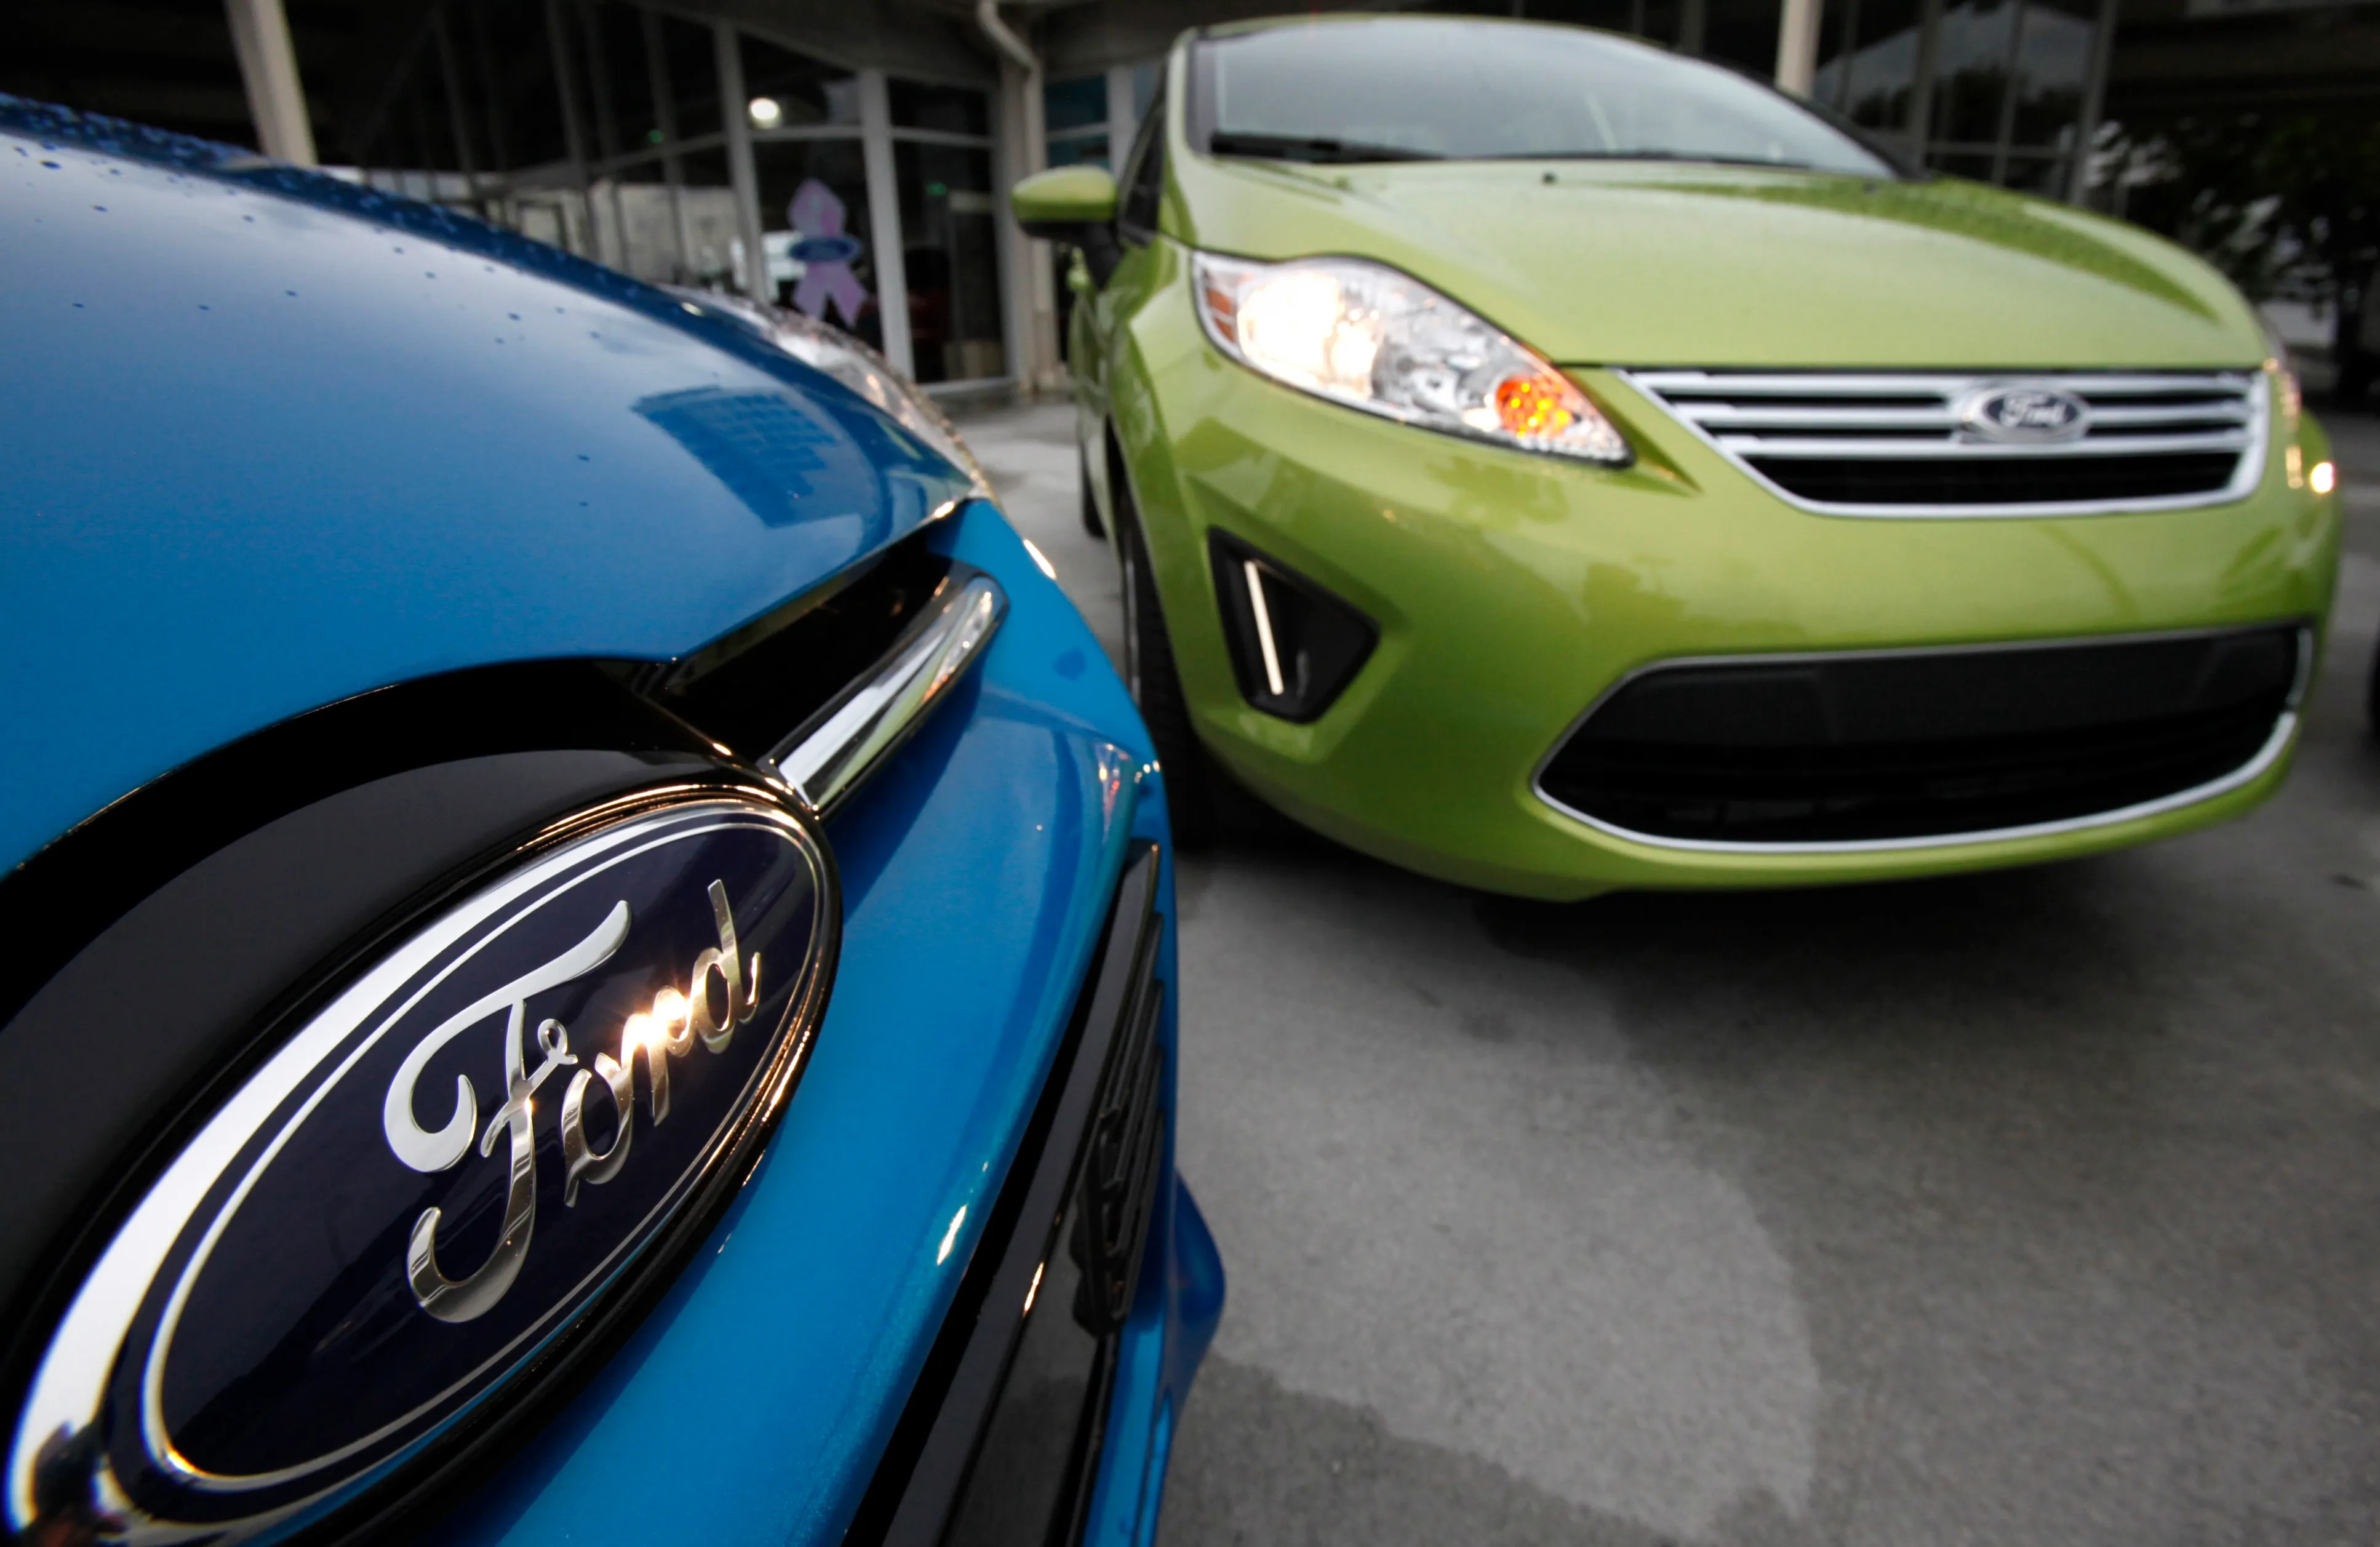 medium resolution of ford knew focus fiesta models had flawed transmission sold them anyway